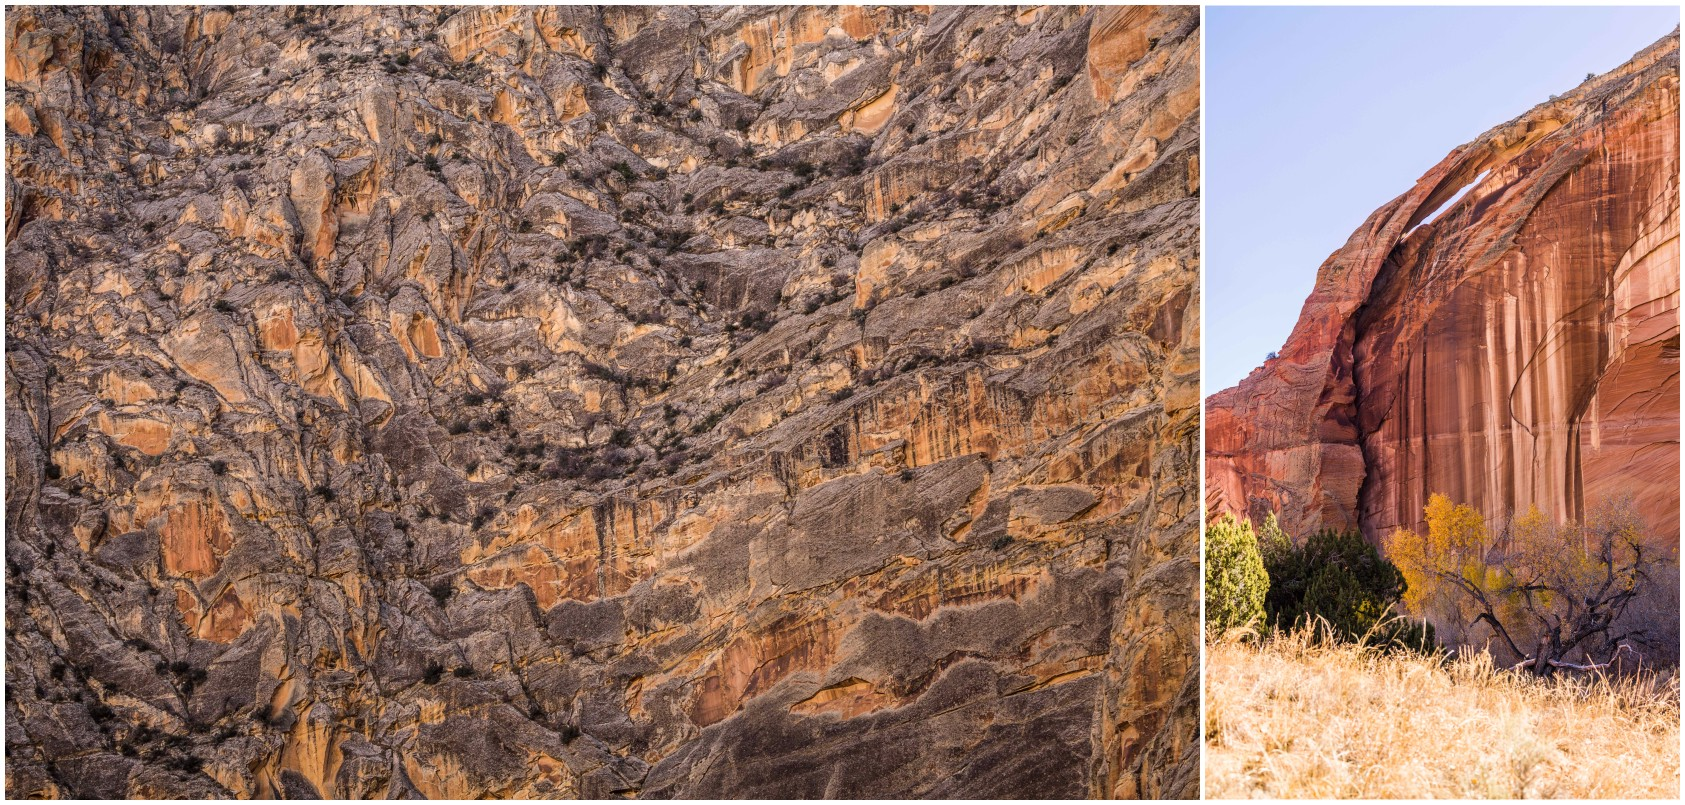 - Left: A view of one of the walls of the river gorge. Right: One of the arches to be spotted along the river gorge trail.